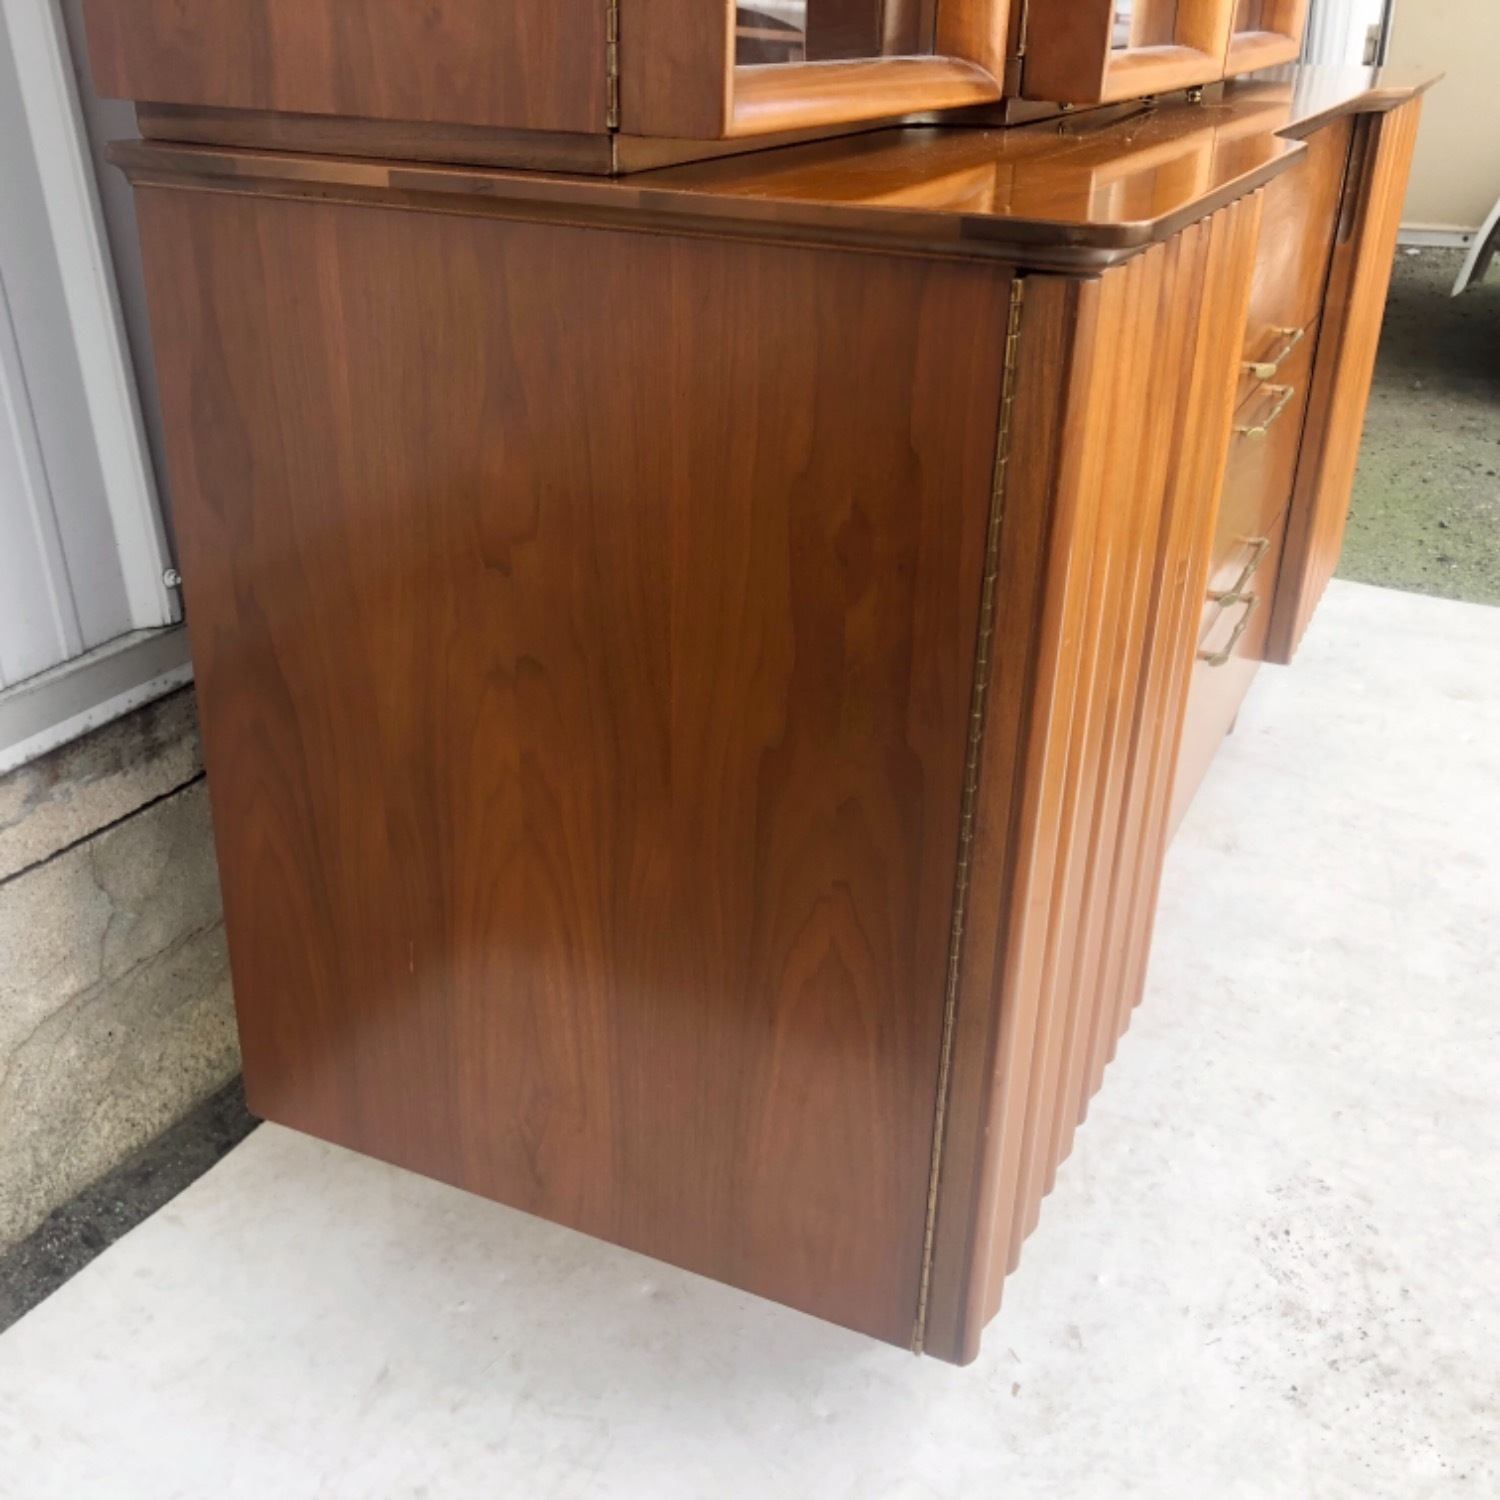 Mid-Century Modern Sideboard With Display Topper - image-8